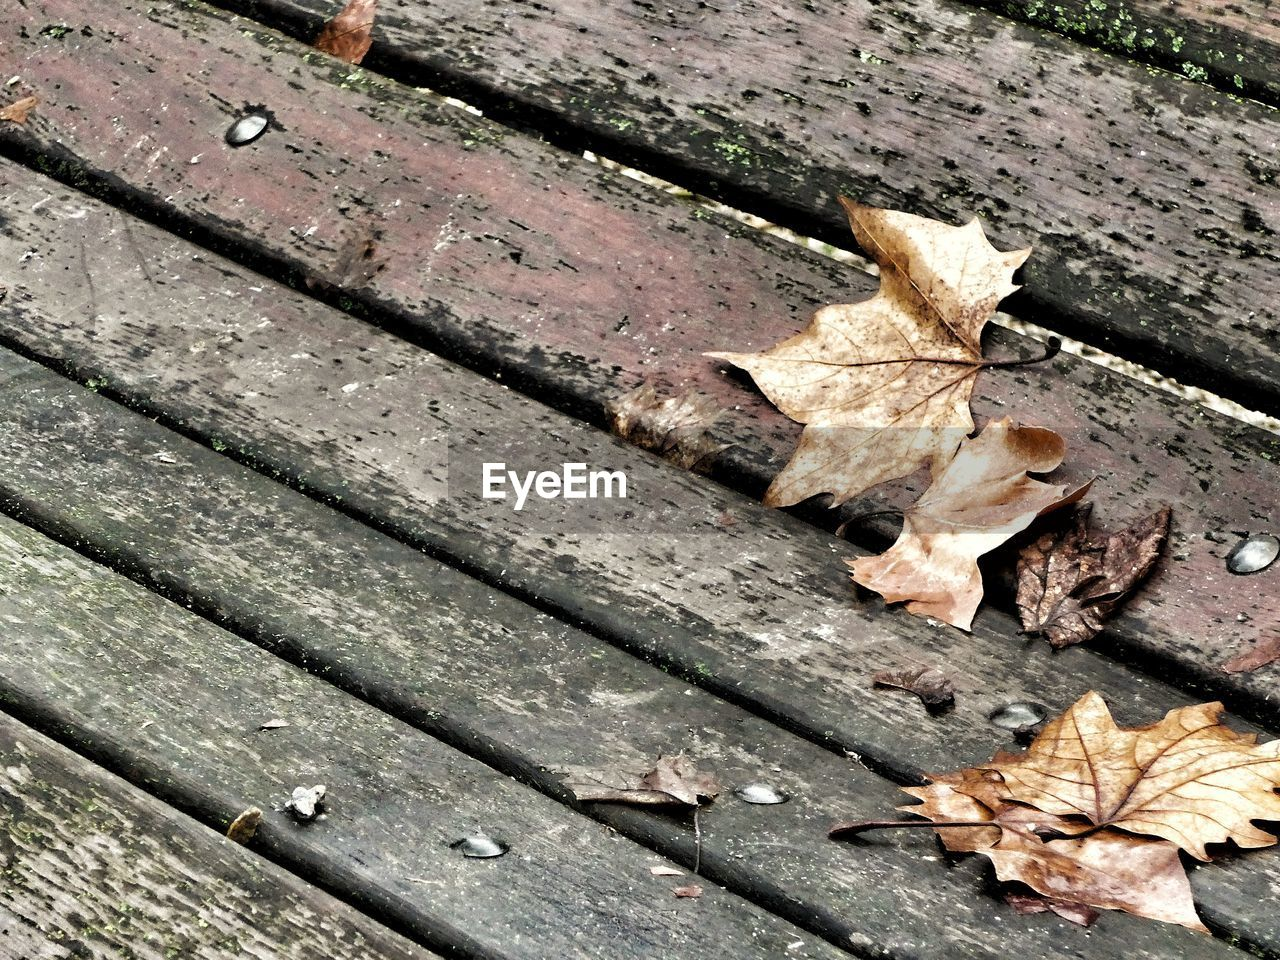 autumn, leaf, change, dry, leaves, fallen, outdoors, nature, day, maple leaf, maple, close-up, no people, wood - material, fragility, beauty in nature